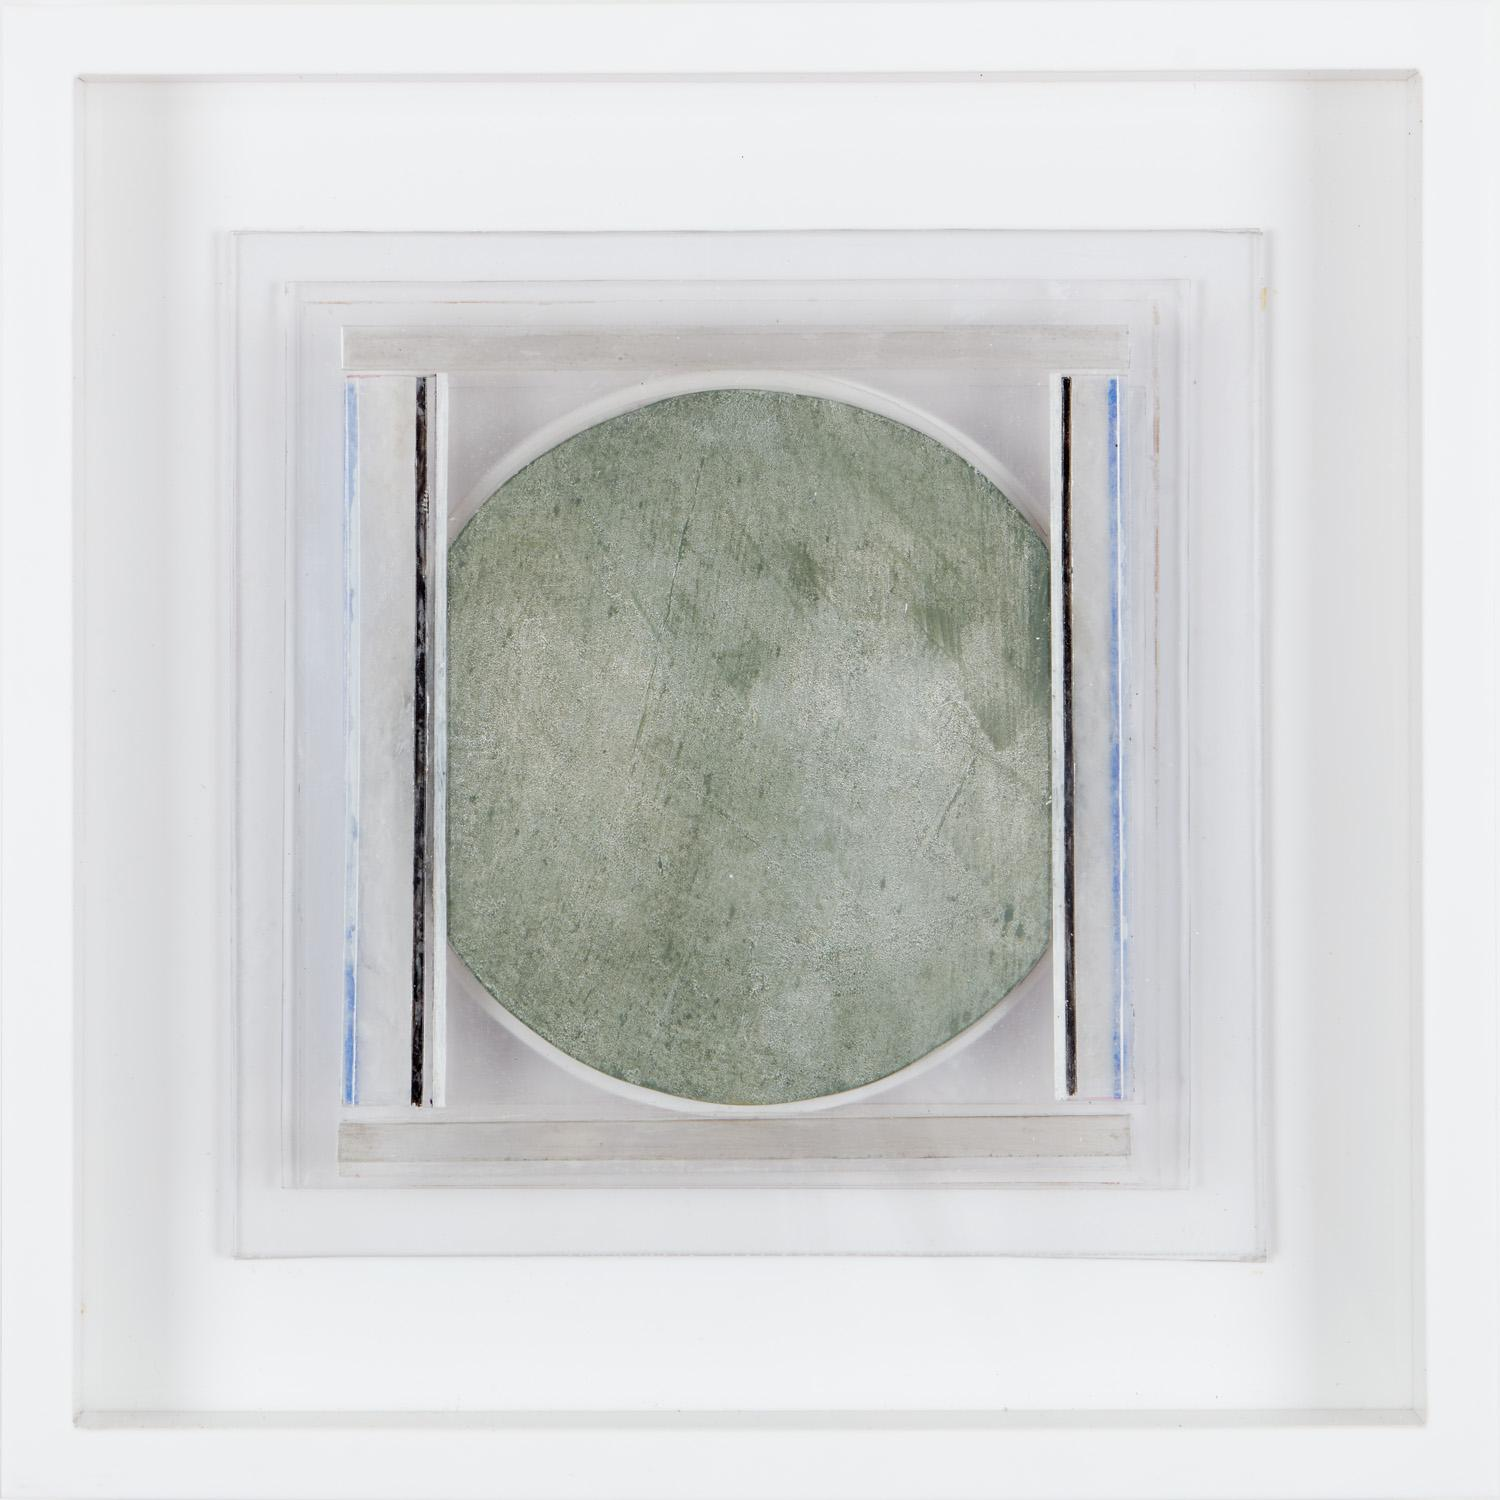 feiler-square-relief-iii-2008-perspex-42-x-42-cm contemporary british art